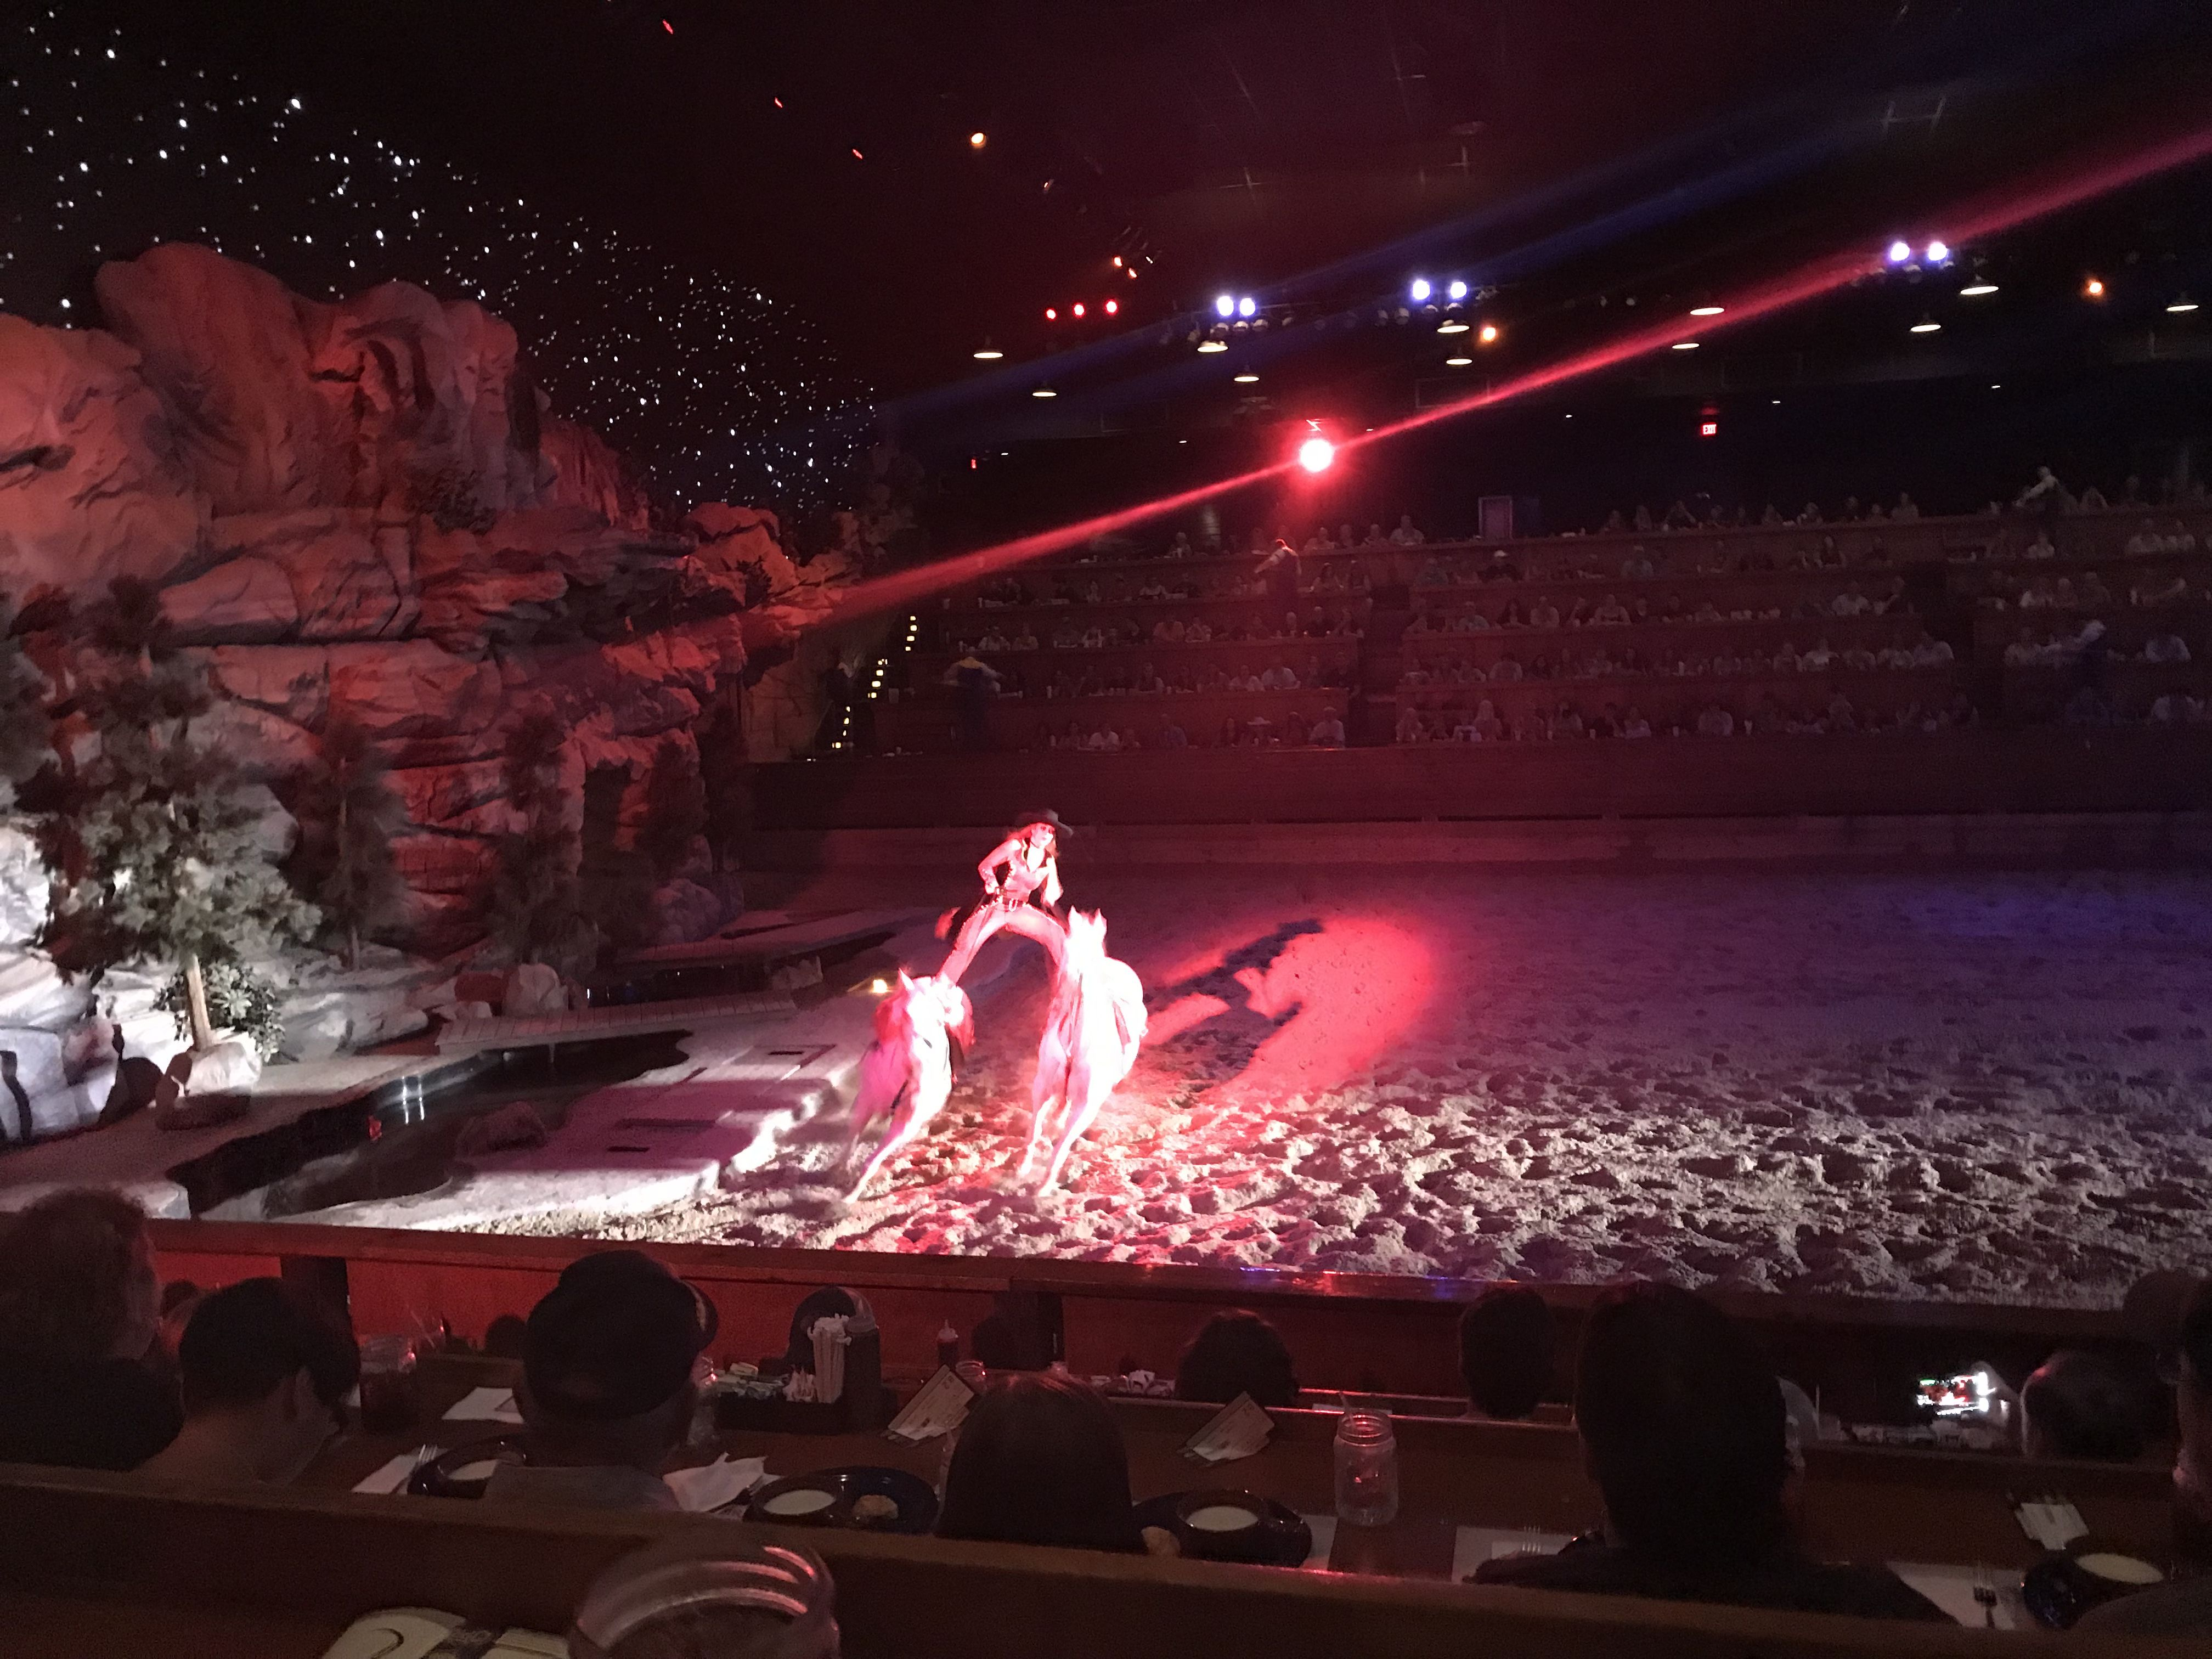 Woman Standing on Two Horses at Dolly Parton's Stampede Dinner Show Pigeon Forge